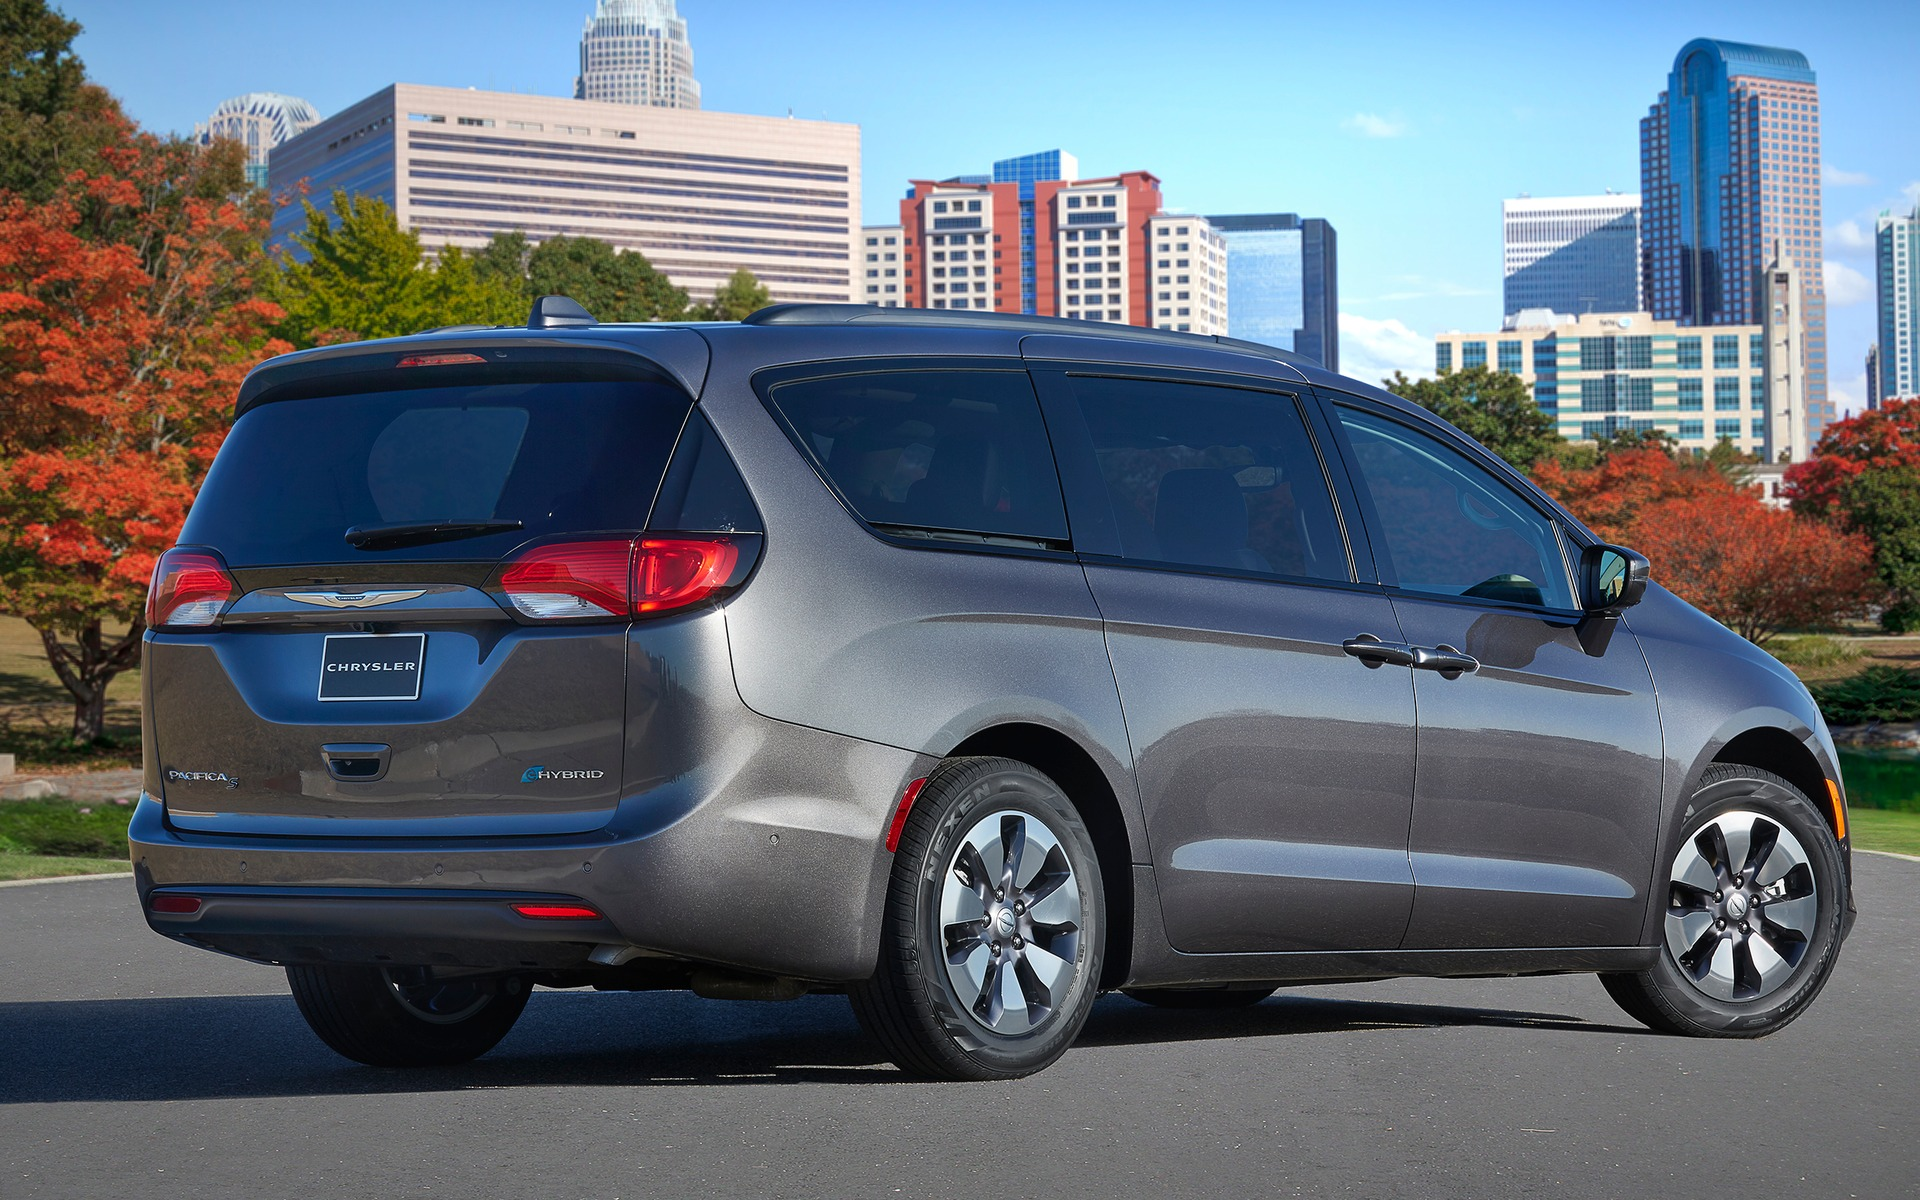 Chrysler Pacifica hybride 2019 : la familiale électrique 350966_2019_Chrysler_Pacifica